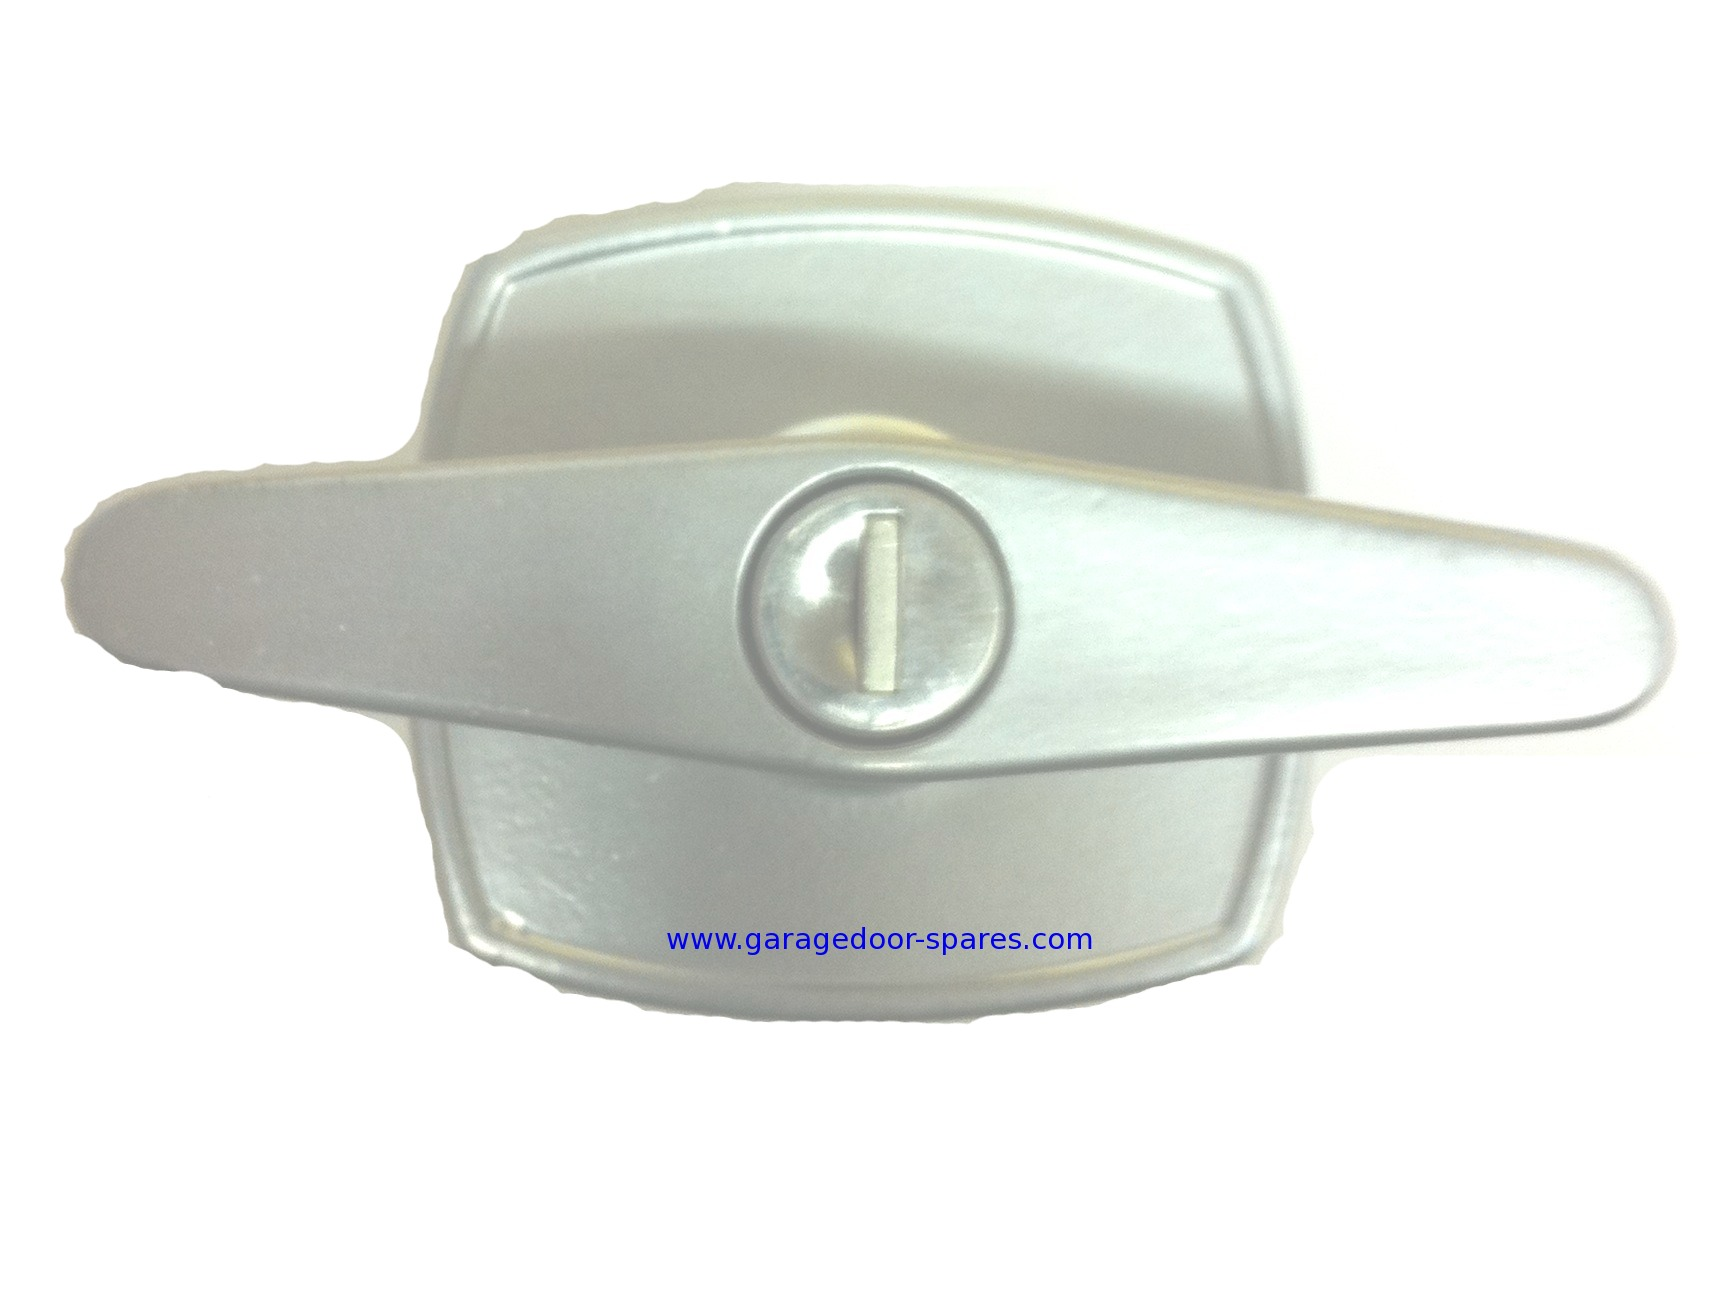 Cardale garage door locking handle early garage door for Door handle with lock